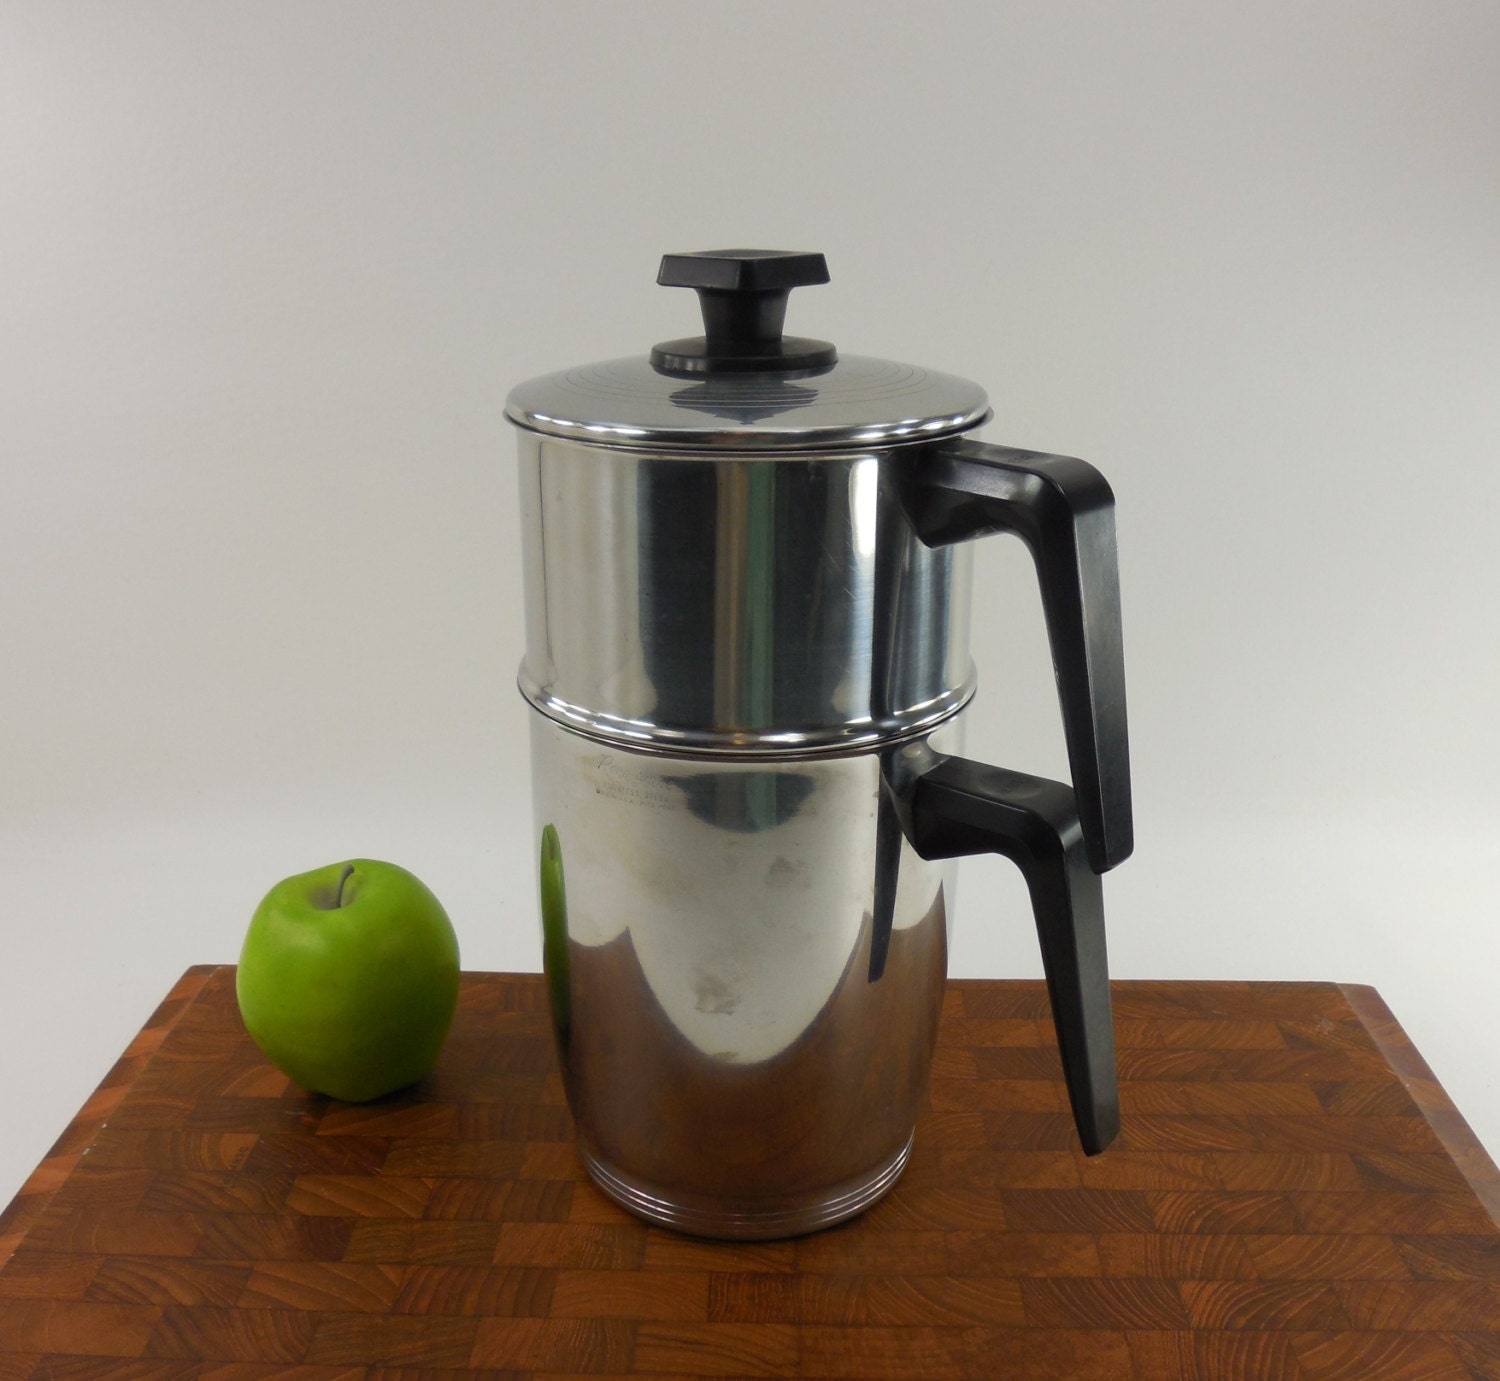 Rema Stove Top Drip Coffee Maker Pot Stainless